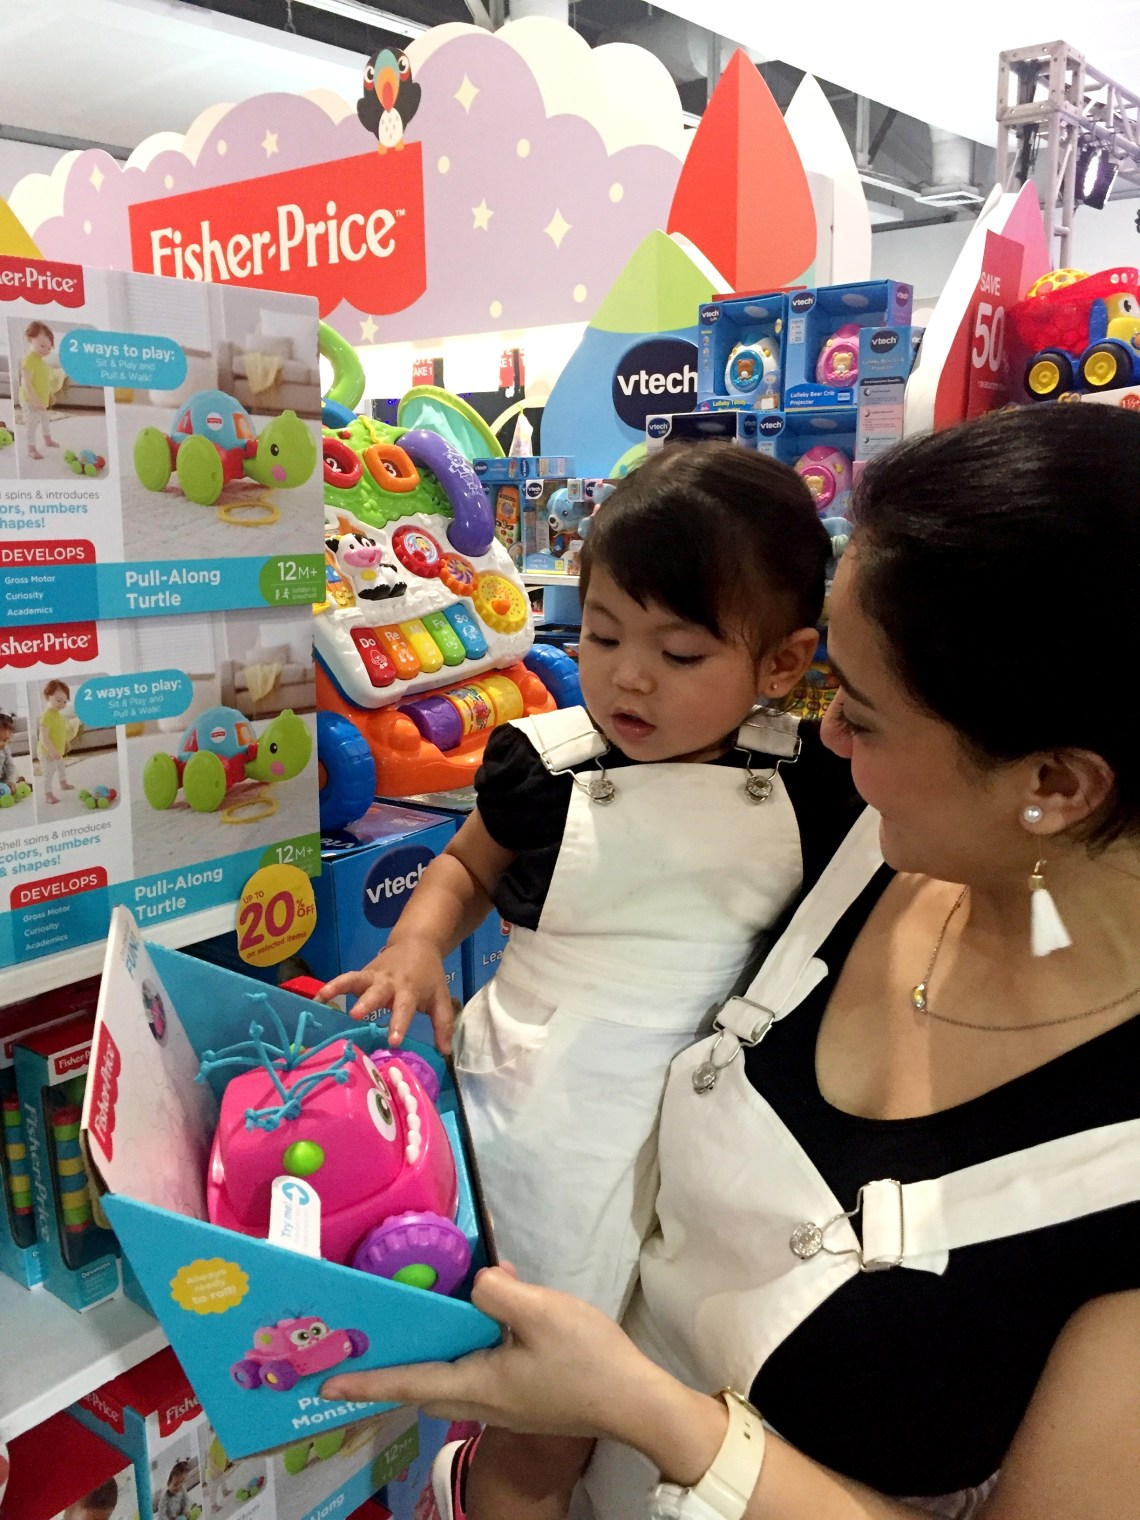 dyosathemomma: Baby Company Grand Baby Fair Year 8 SM Megatrade Hall, Fisher Price